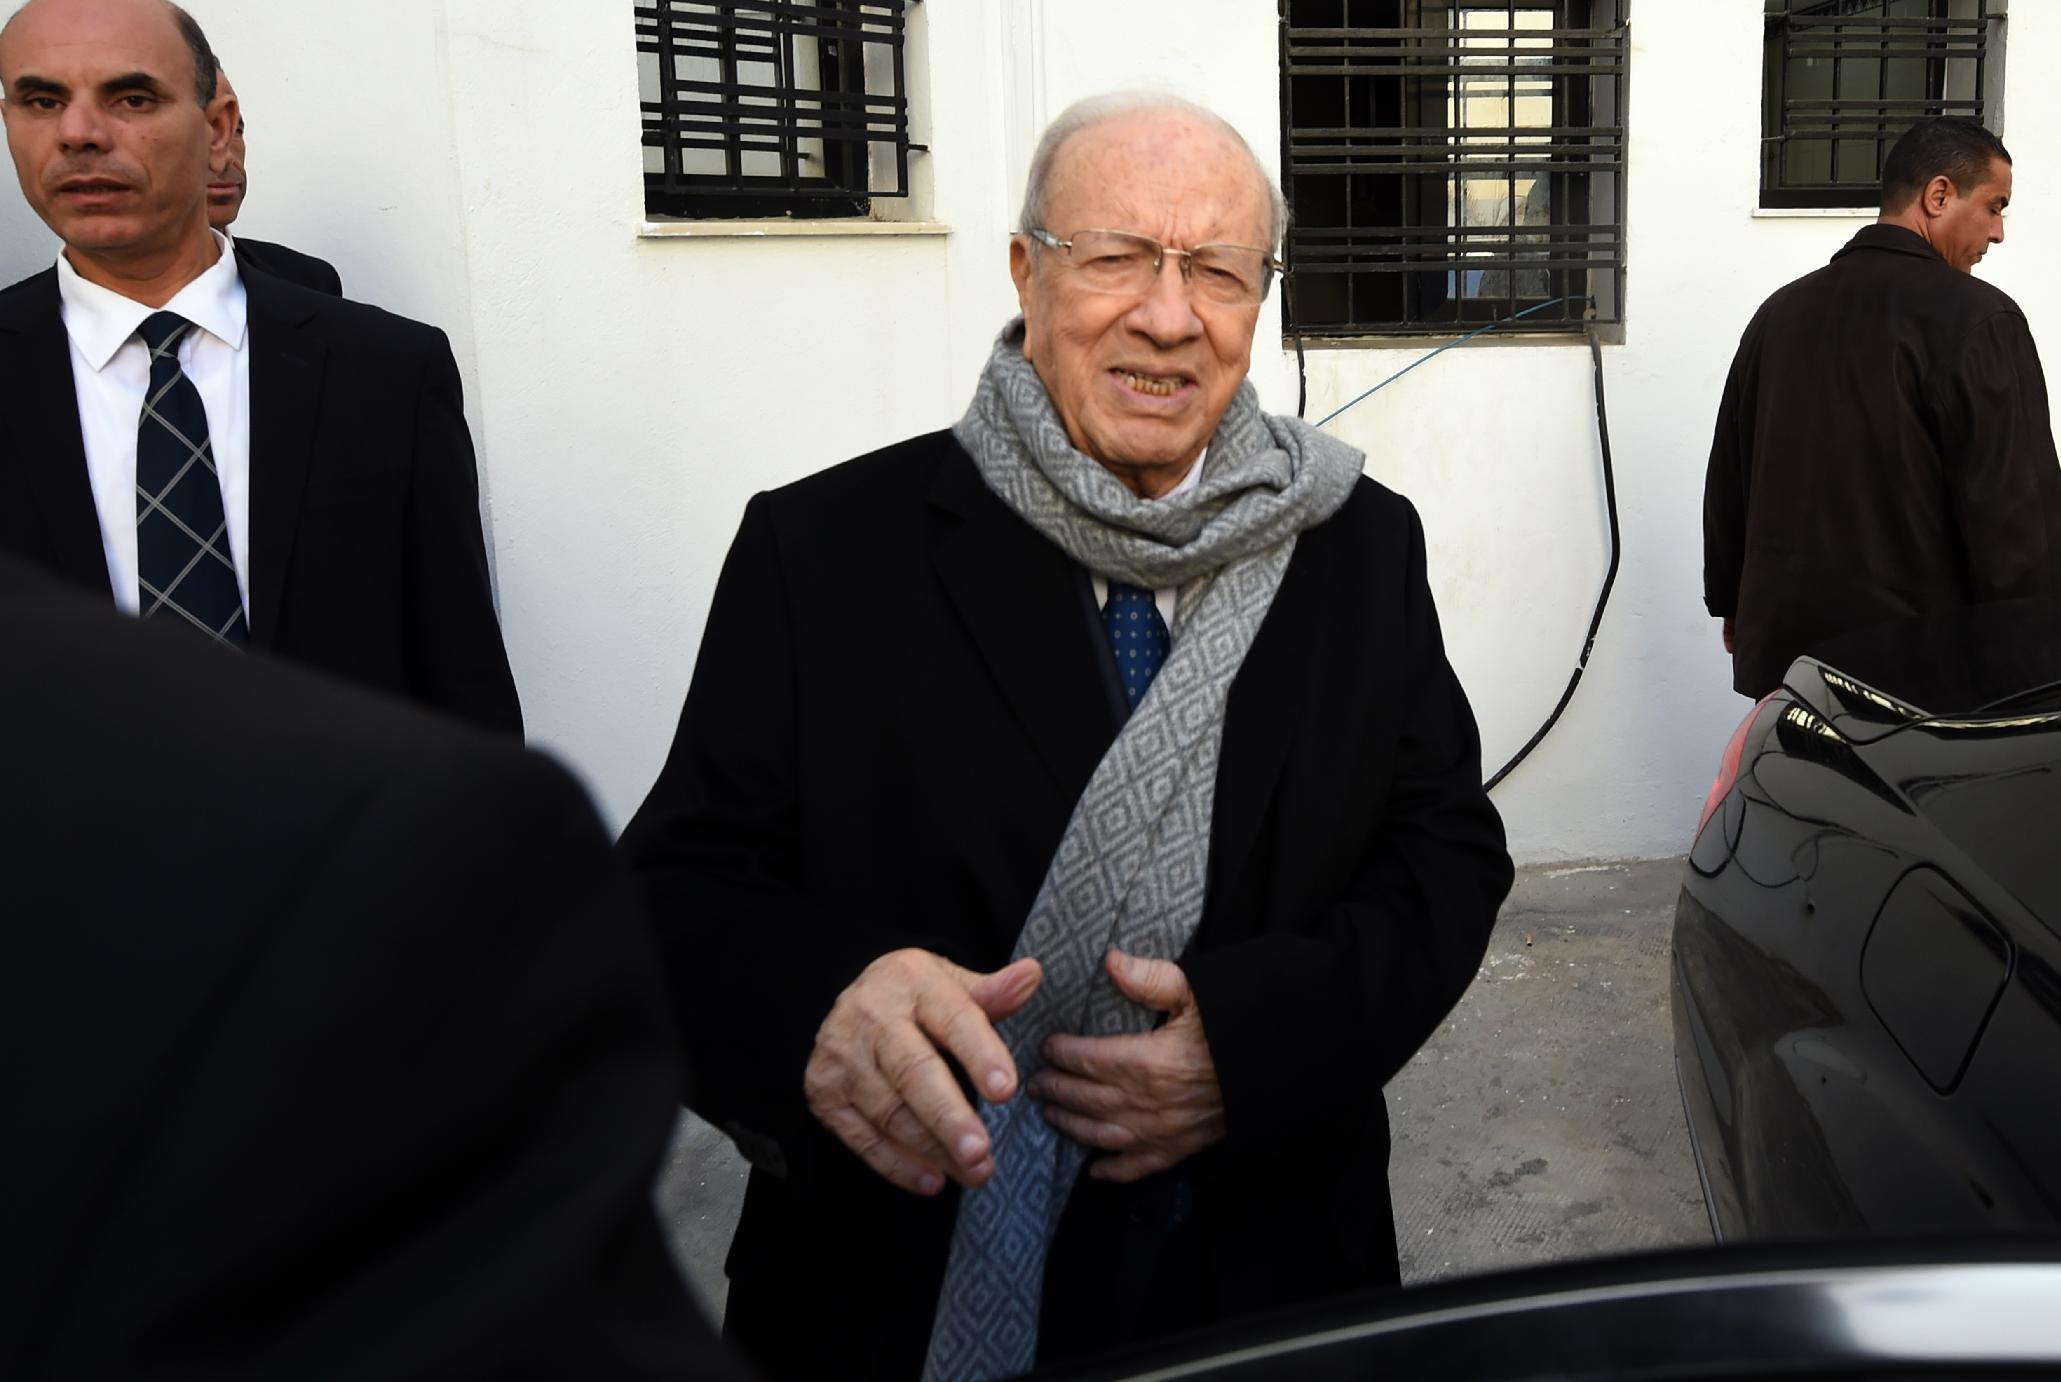 Anti-Islamist Beji Caid Essebsi, named as the winner in Tunisia's first free presidential election, arrives at his party's headquarters on December 22, 2014 in Tunis (AFP Photo/Fethi Belaid)